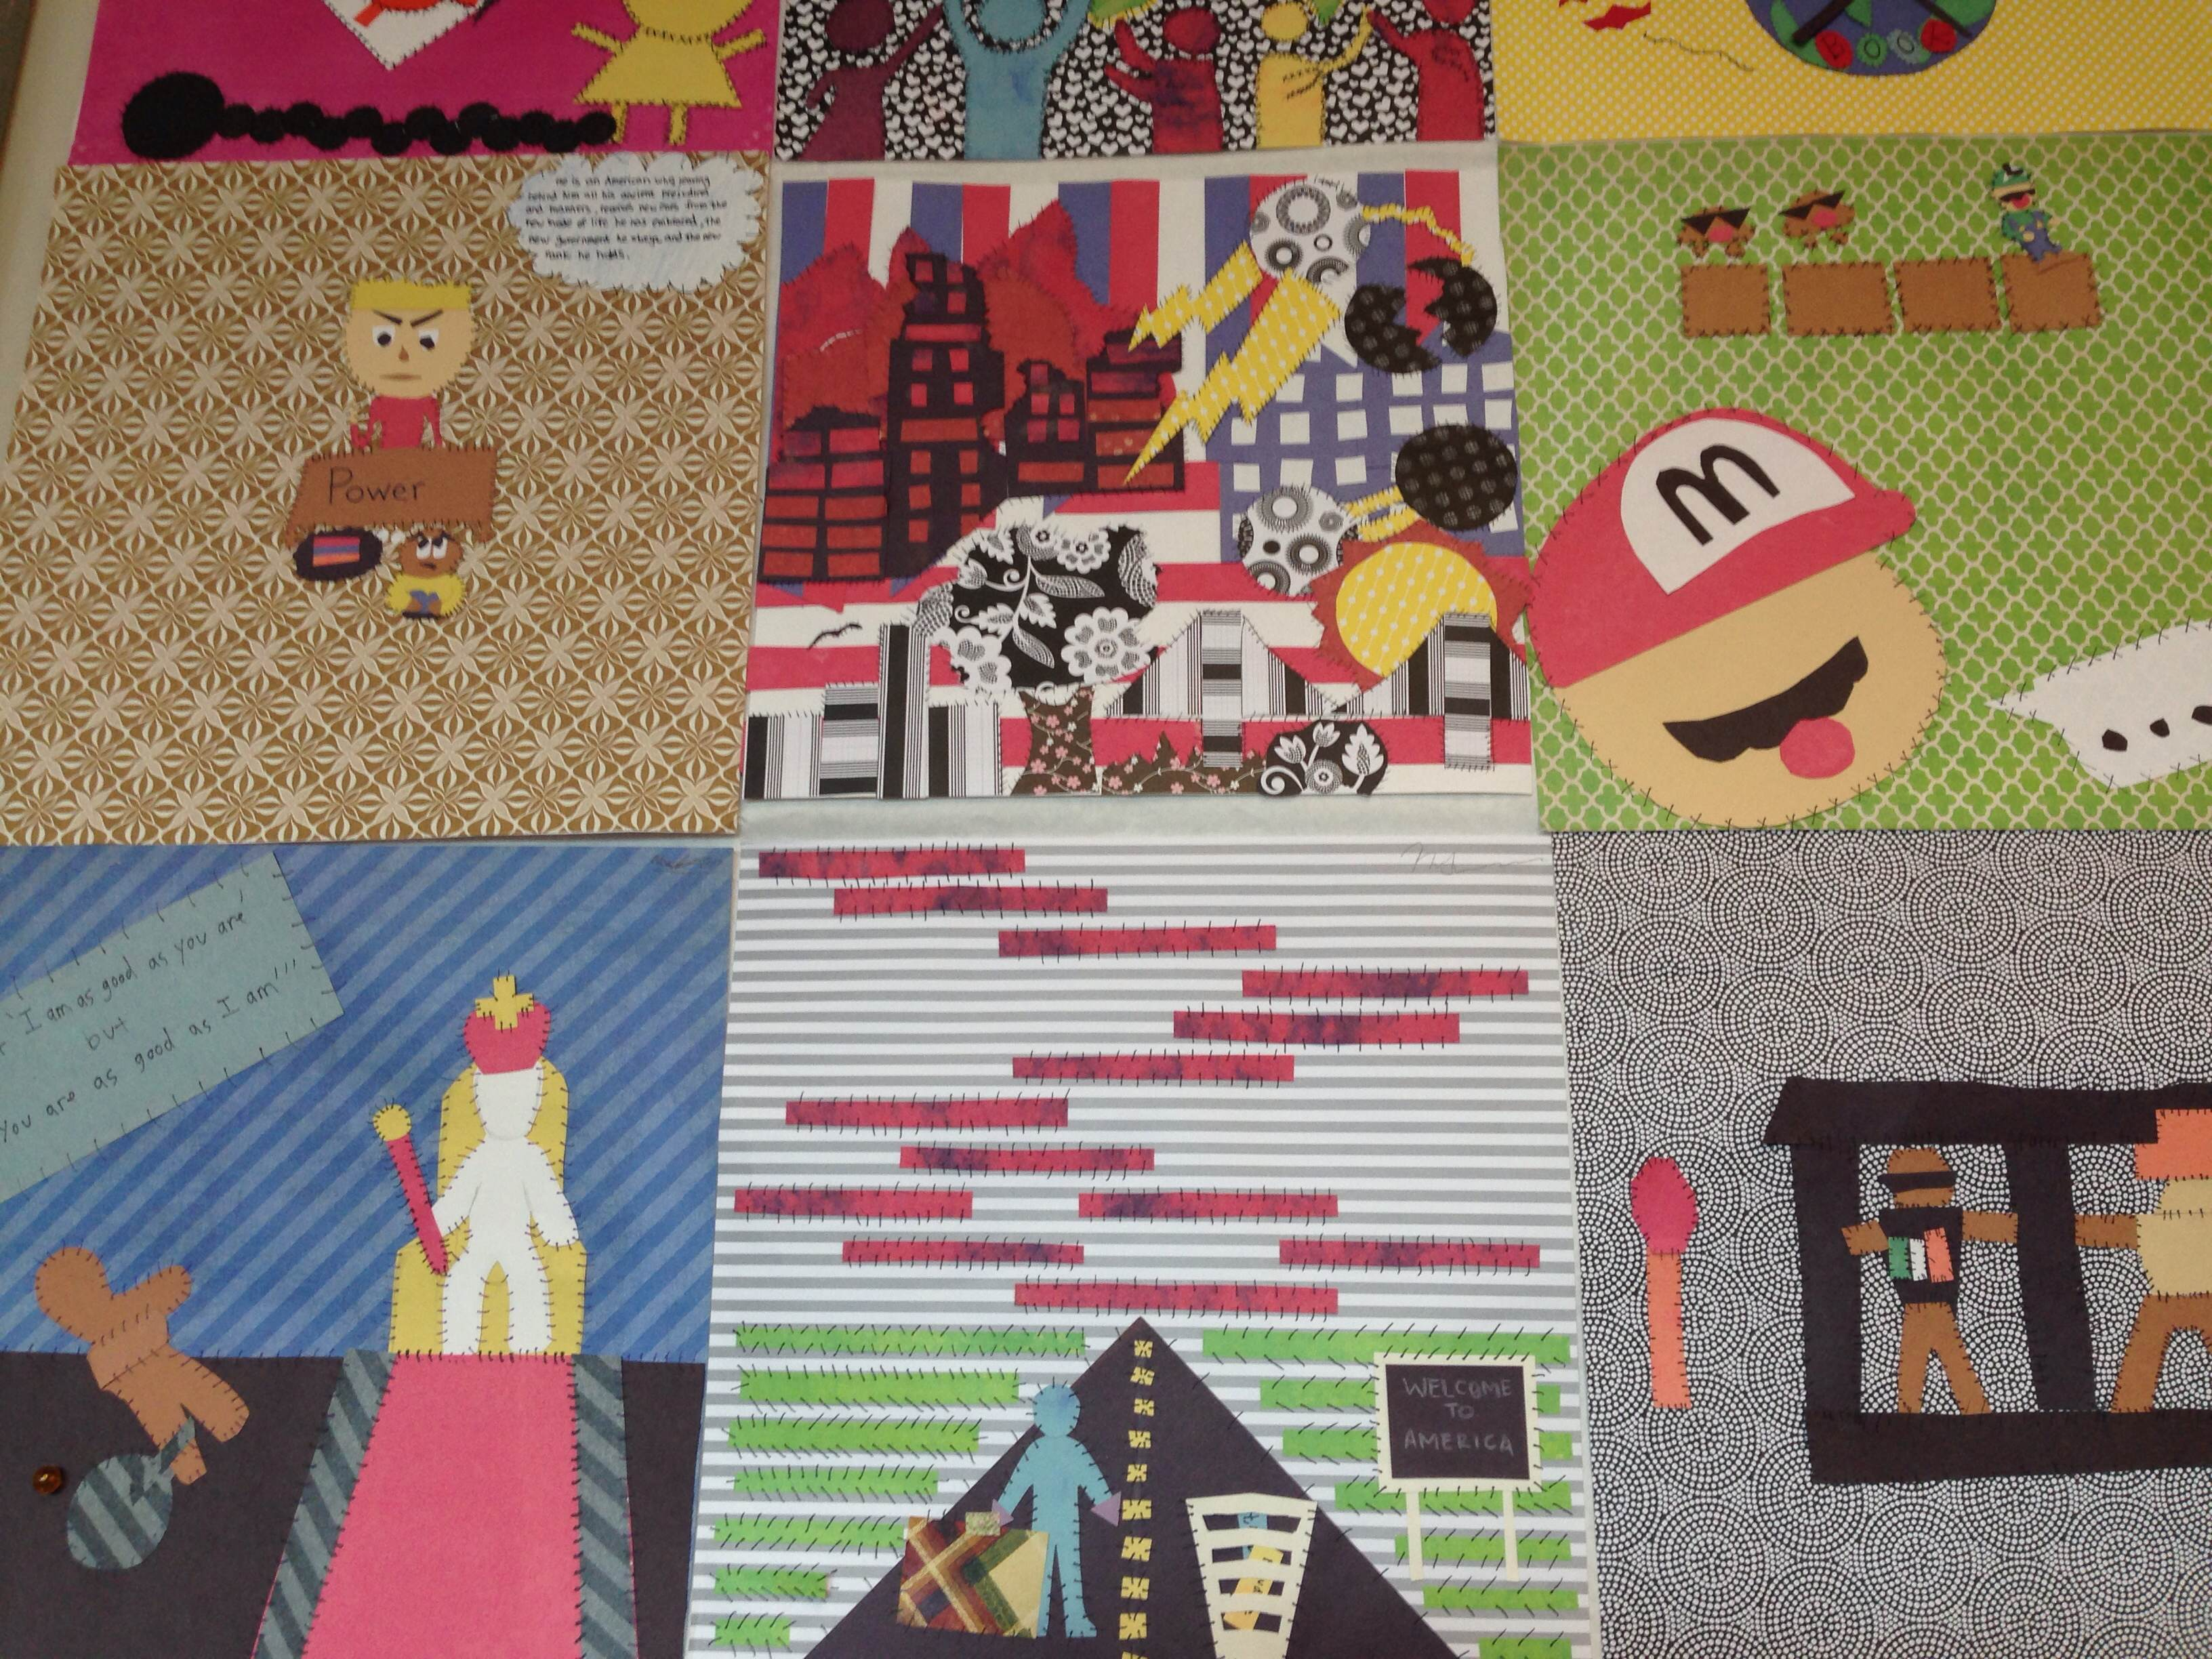 Karen's class stitched together their individual arpilleras to make a diverse quilt that all took part in creating.